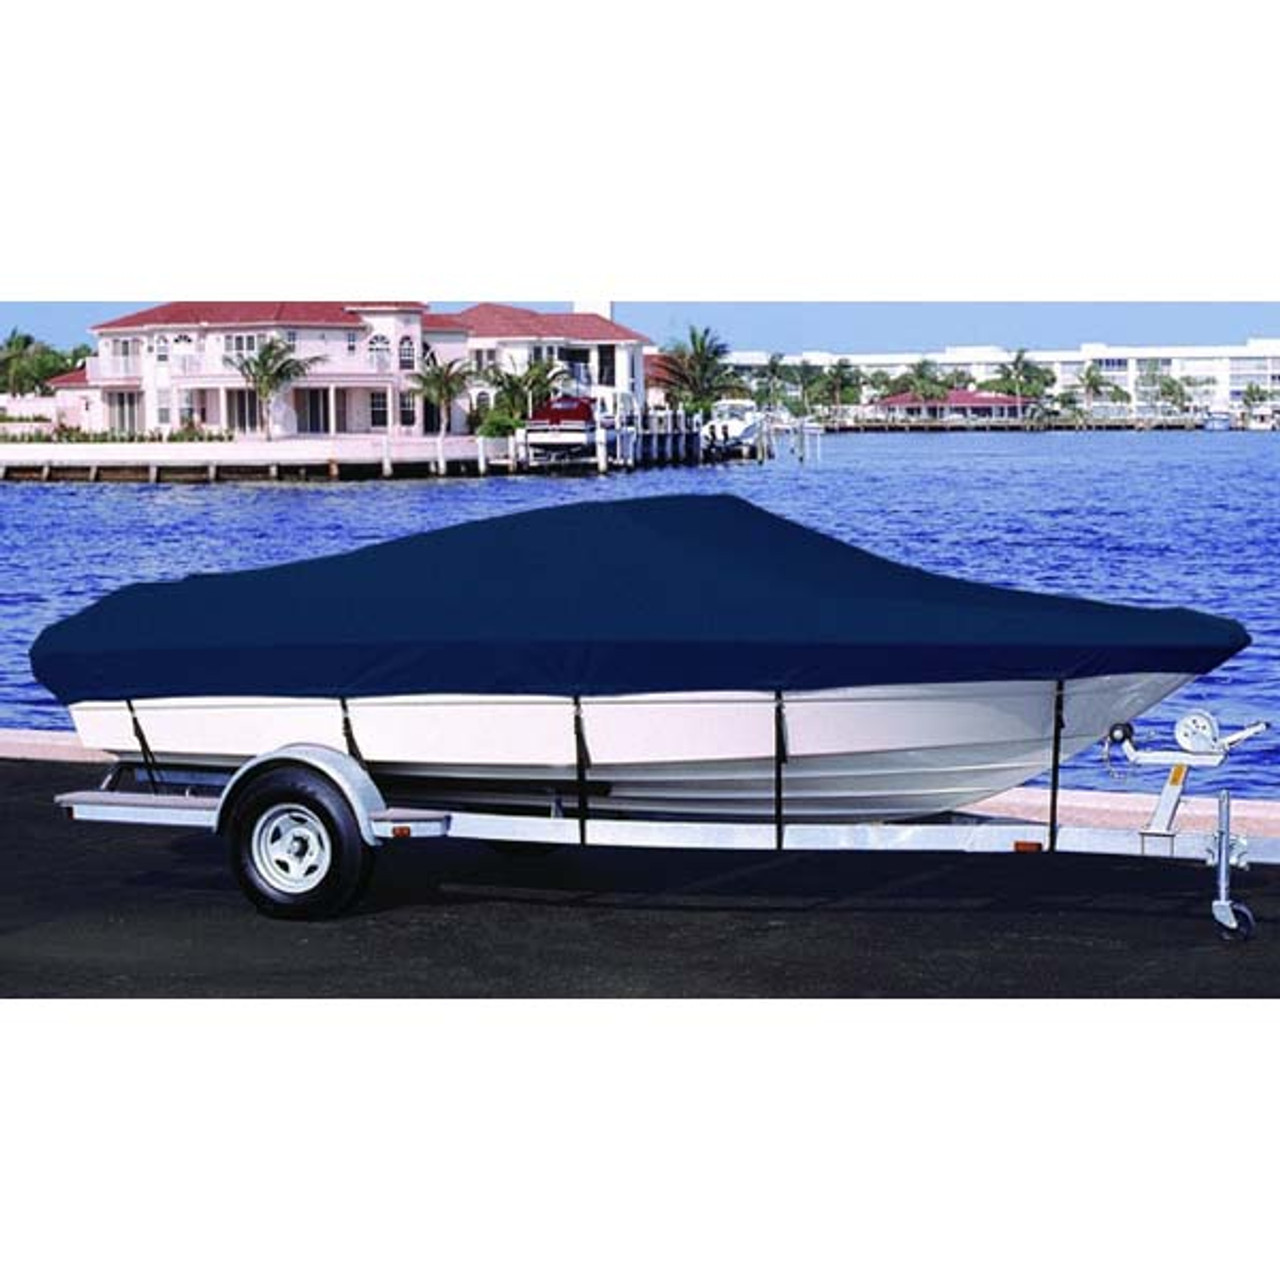 BLUE BOAT COVER FITS Lund 1660 Classic SS 2006 2007 2008